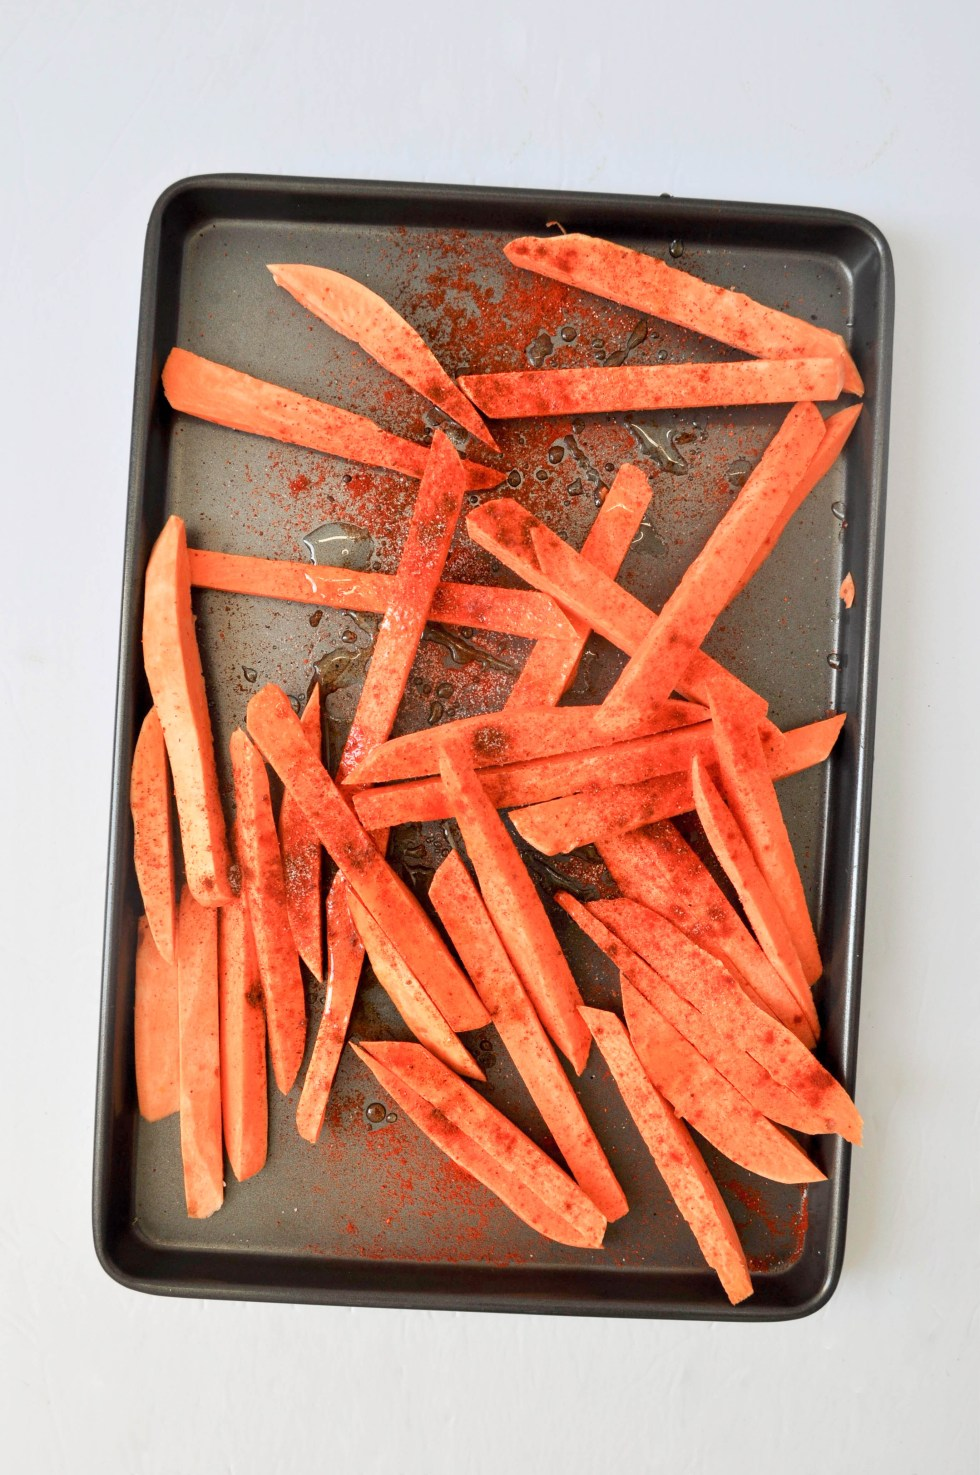 These baked spicy sweet potato fries are tossed with smoked paprika, cayenne and maple syrup and crisped up in the oven | POP KITCHEN